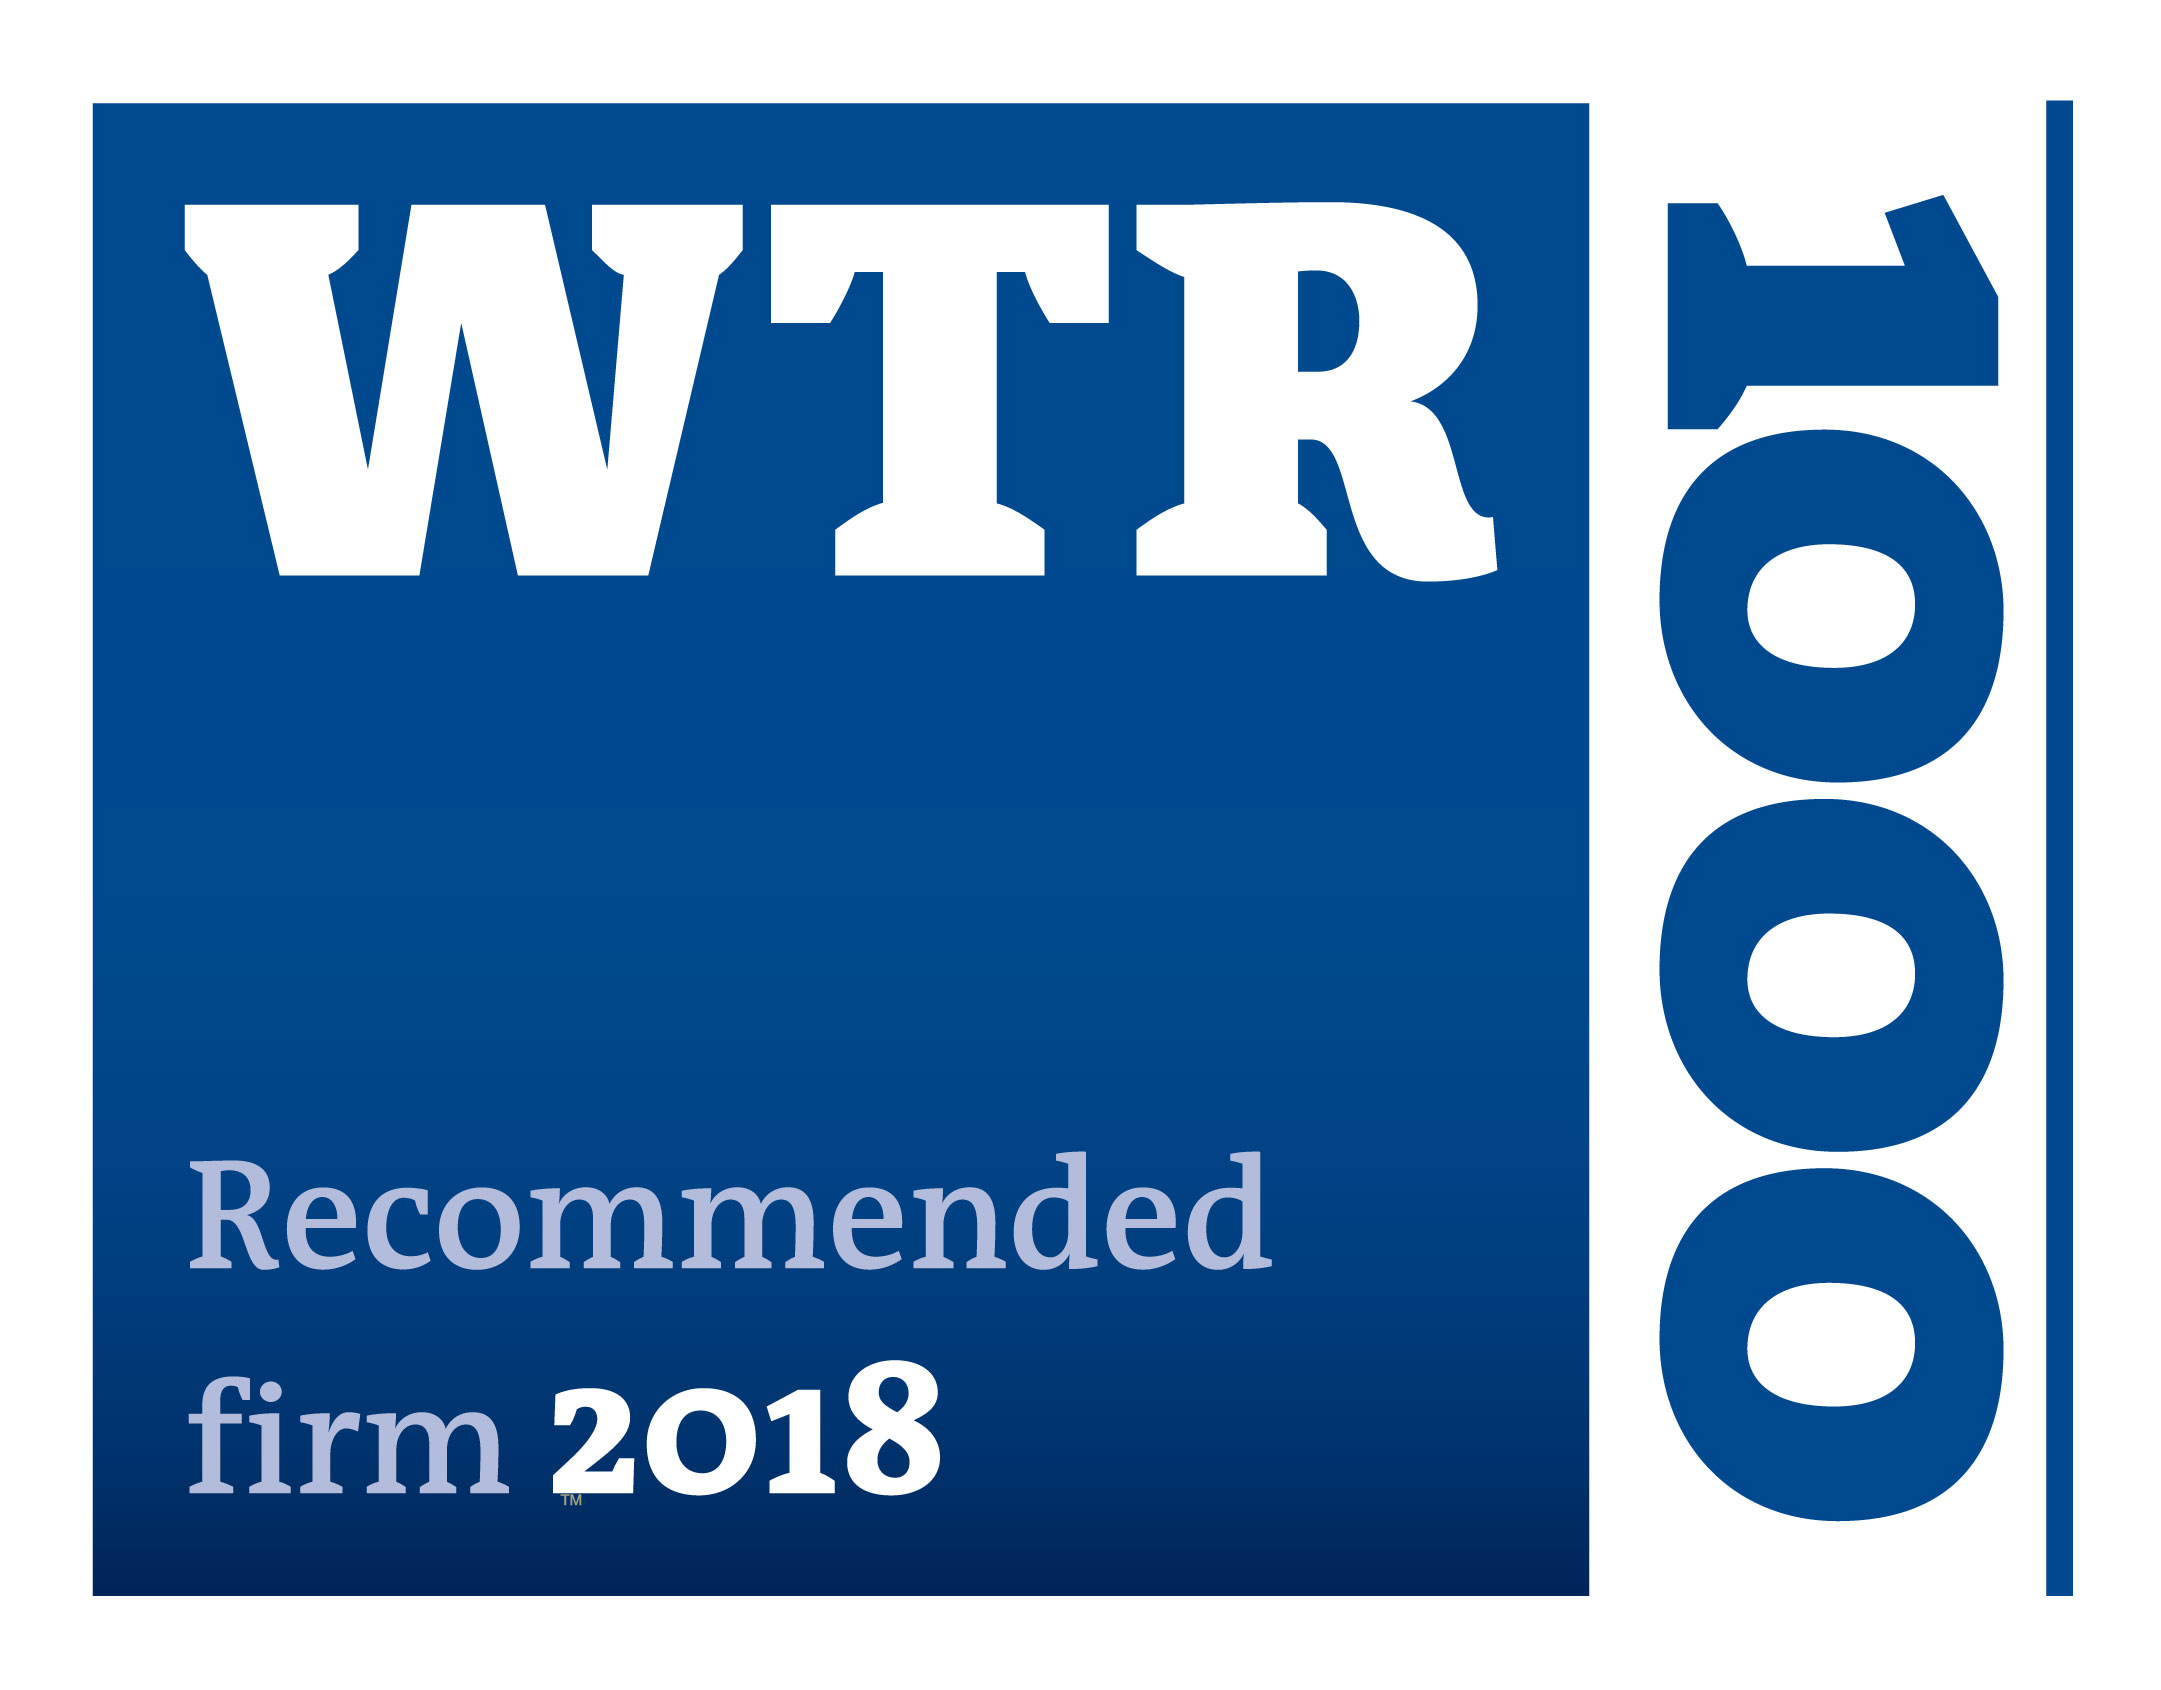 WTR Recommended Firm